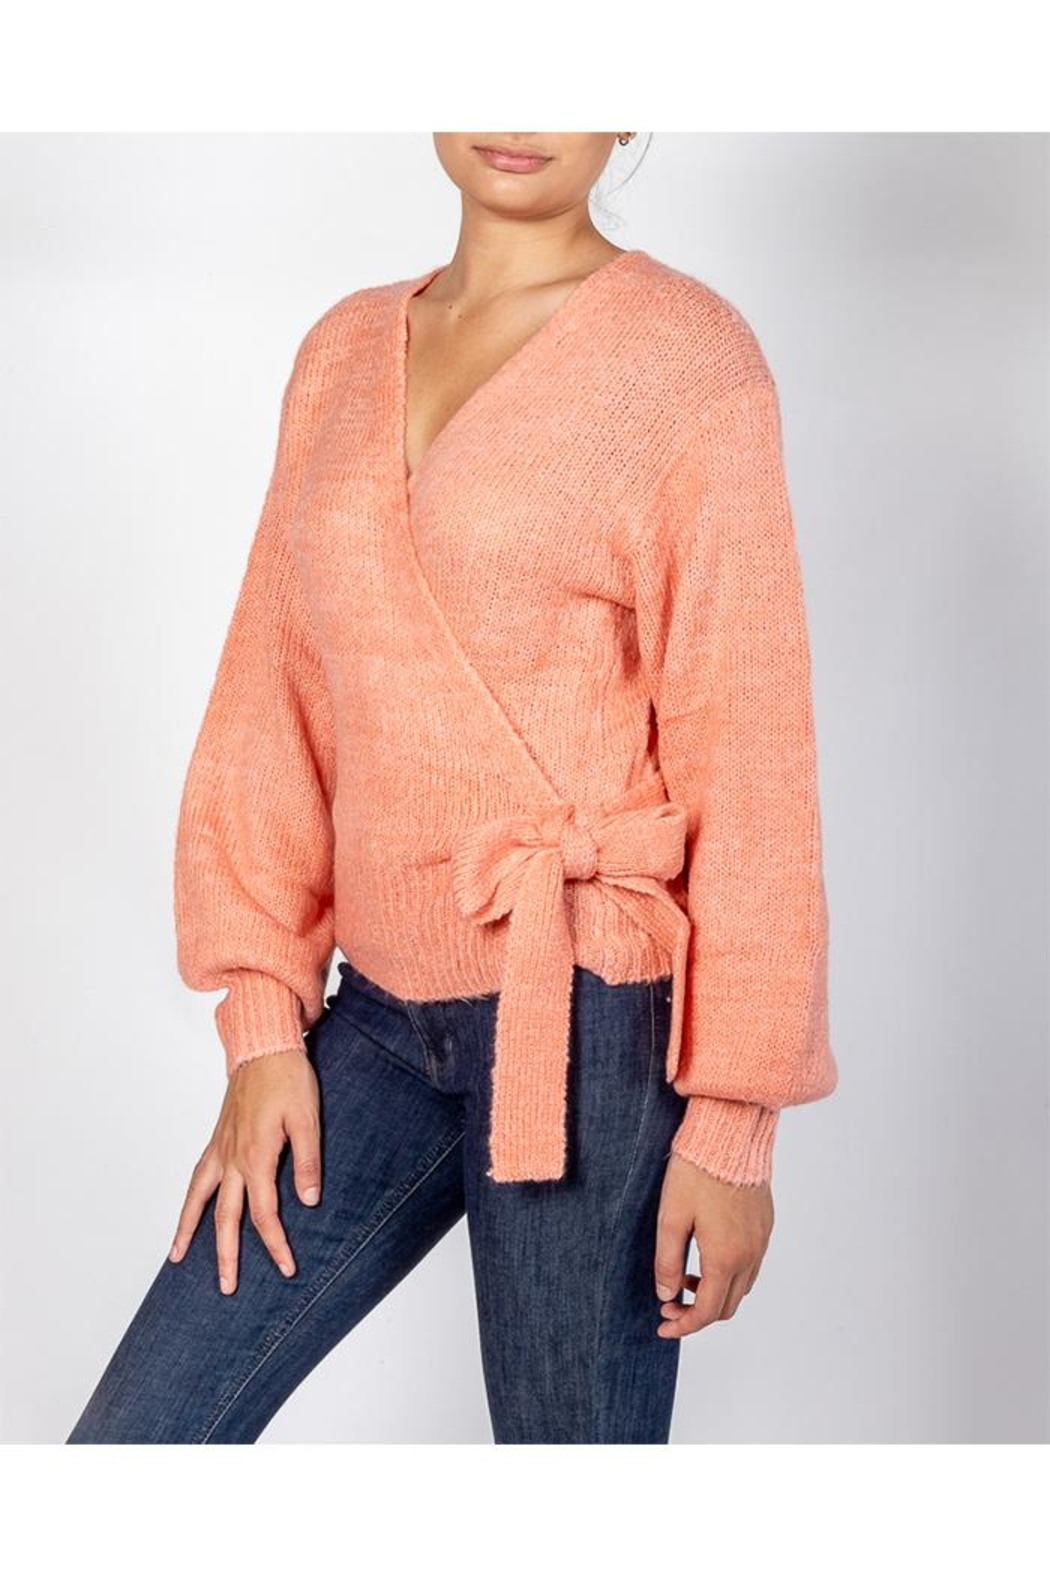 Cotton Candy Coral Wrap Sweater - Side Cropped Image